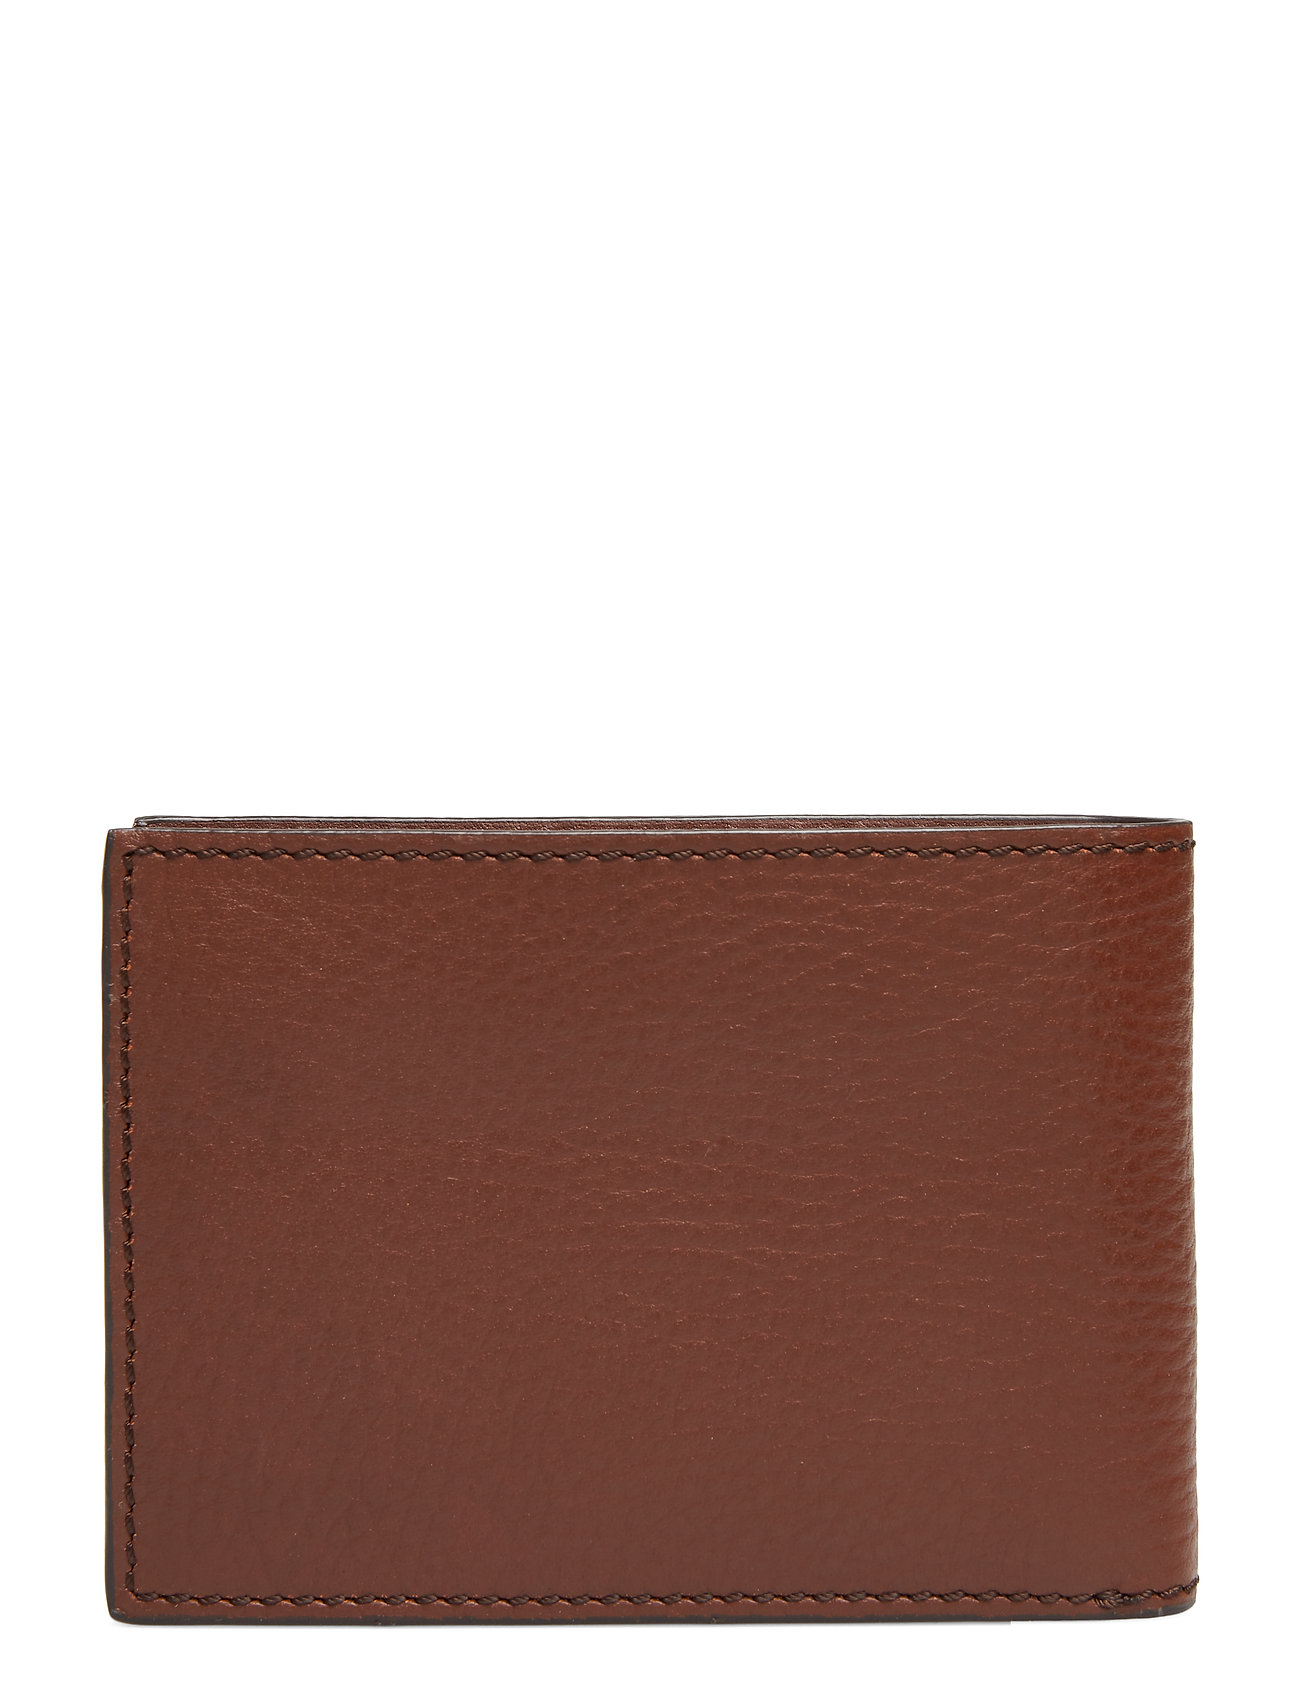 Wrene Accessories Wallets Classic Wallets Brun Tiger Of Sweden